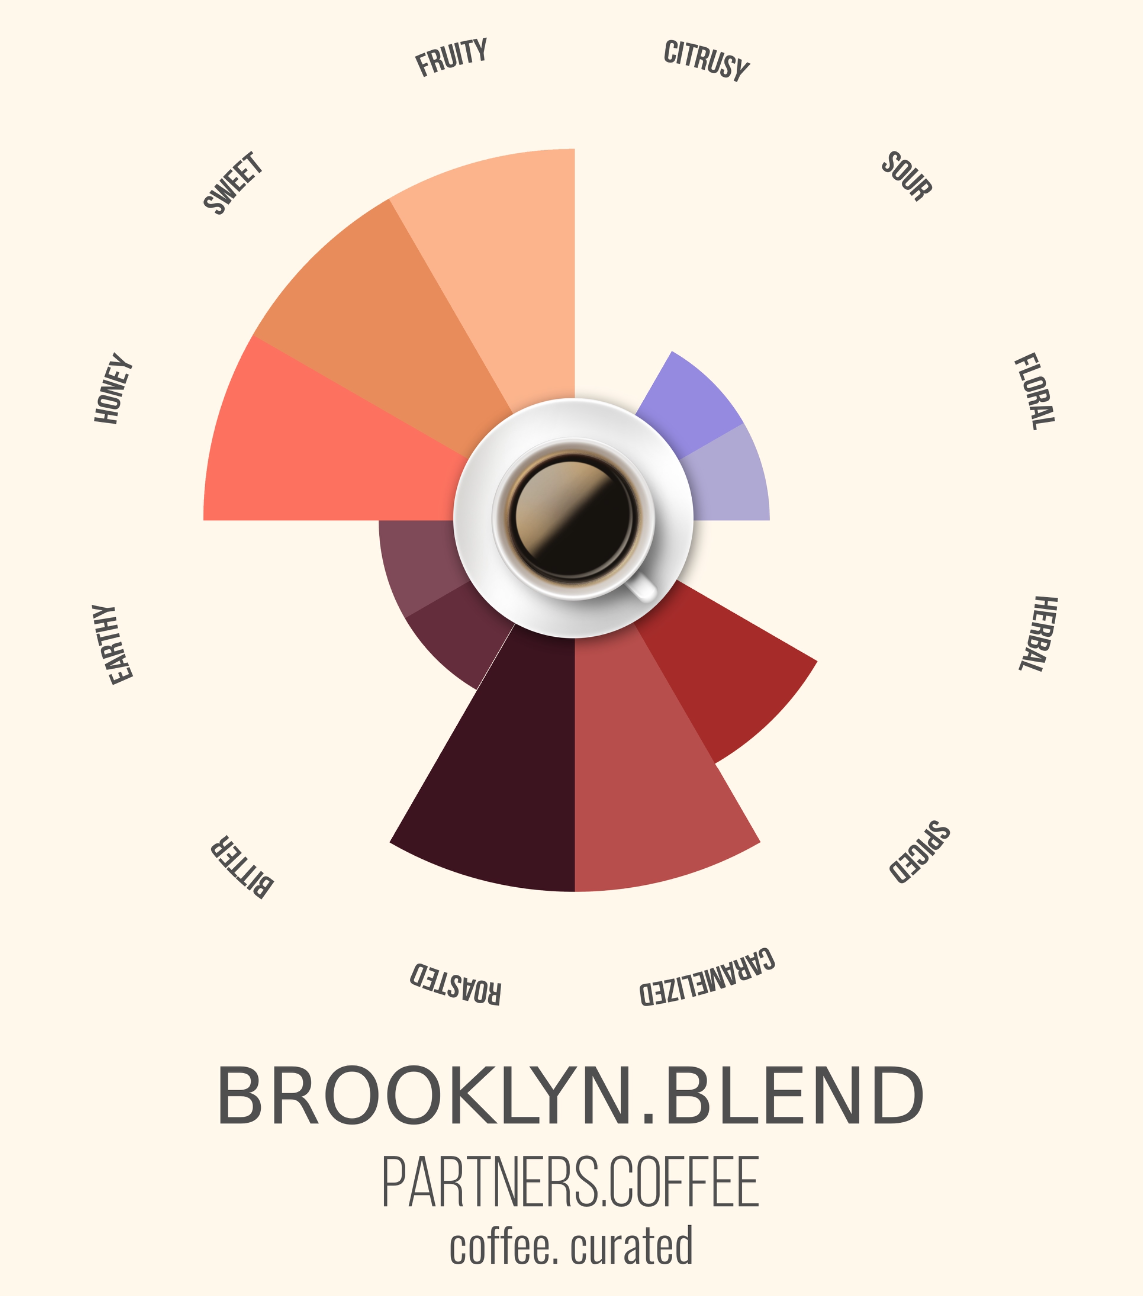 Partners Coffee Brooklyn Blend_Coffee. Curated.